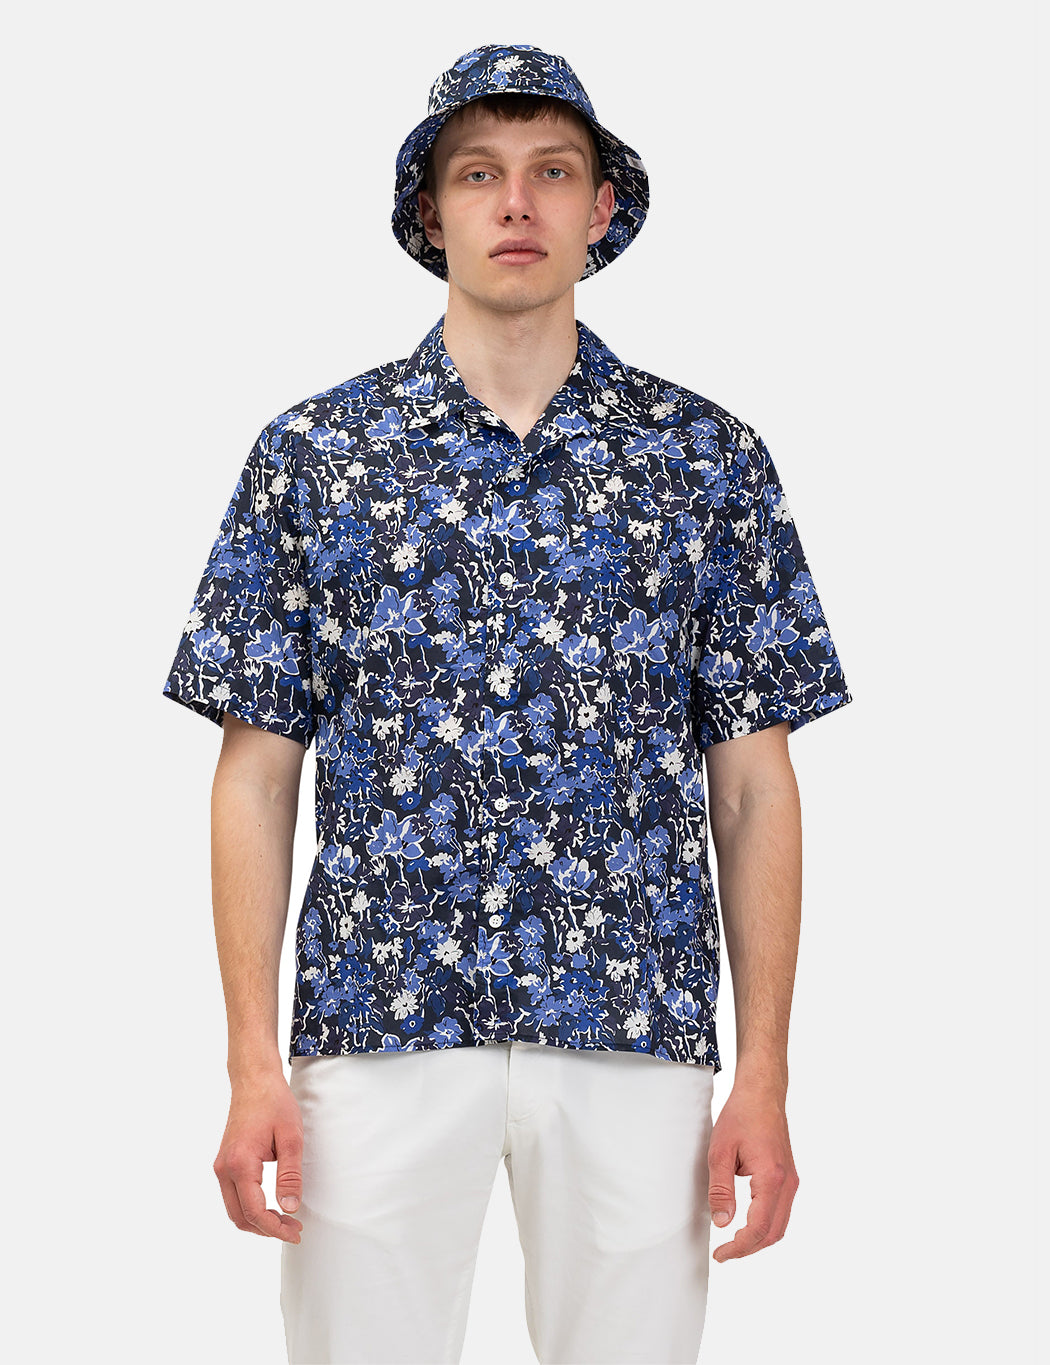 Norse Projects Carsten Liberty Print Shirt S/S - Blue | URBAN EXCESS